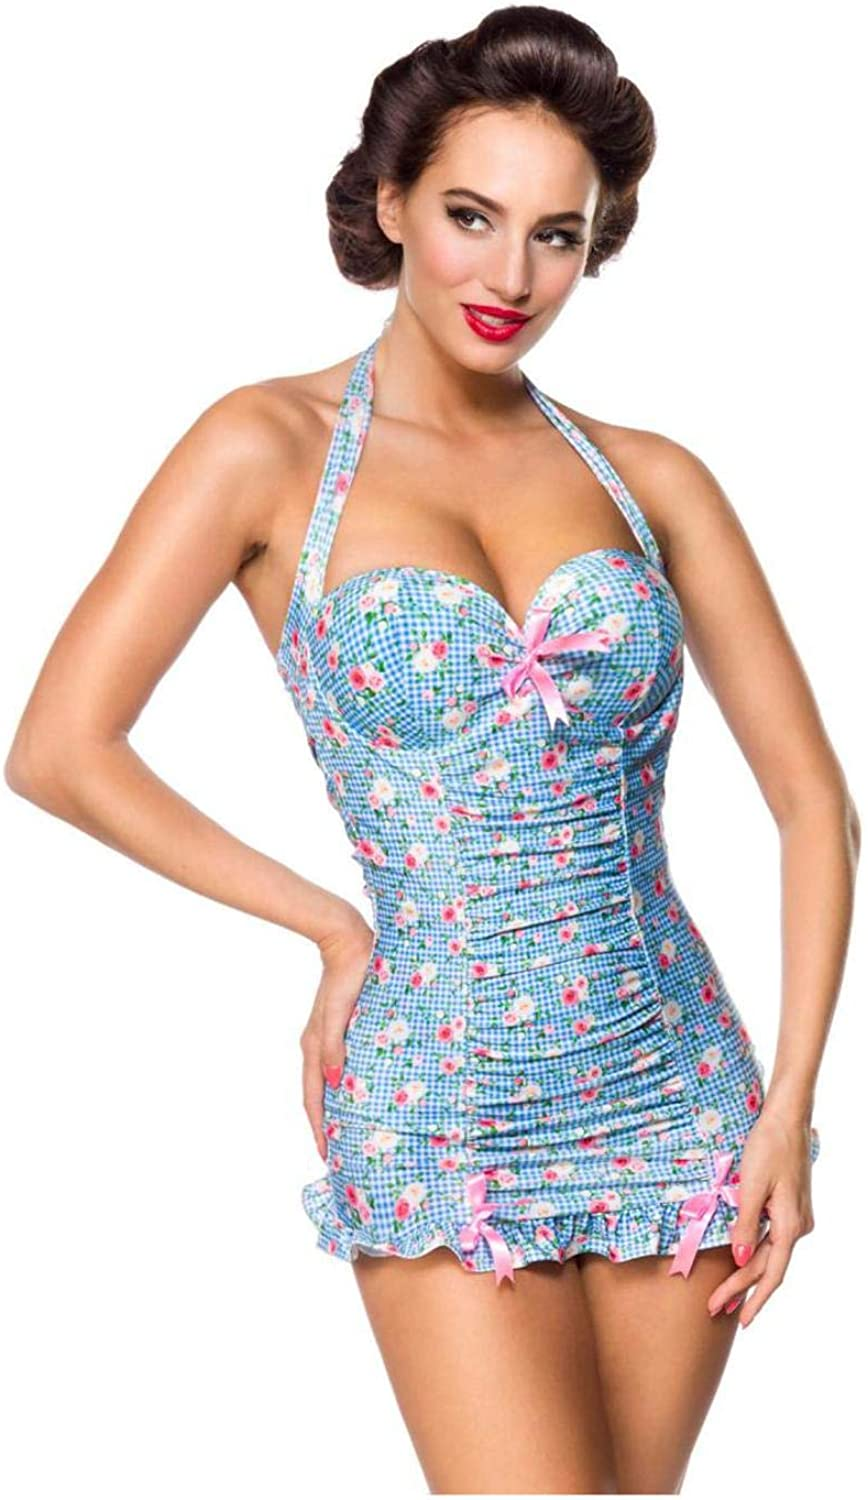 New arrival Belsira Ladies Swimsuit Max 56% OFF Vintage